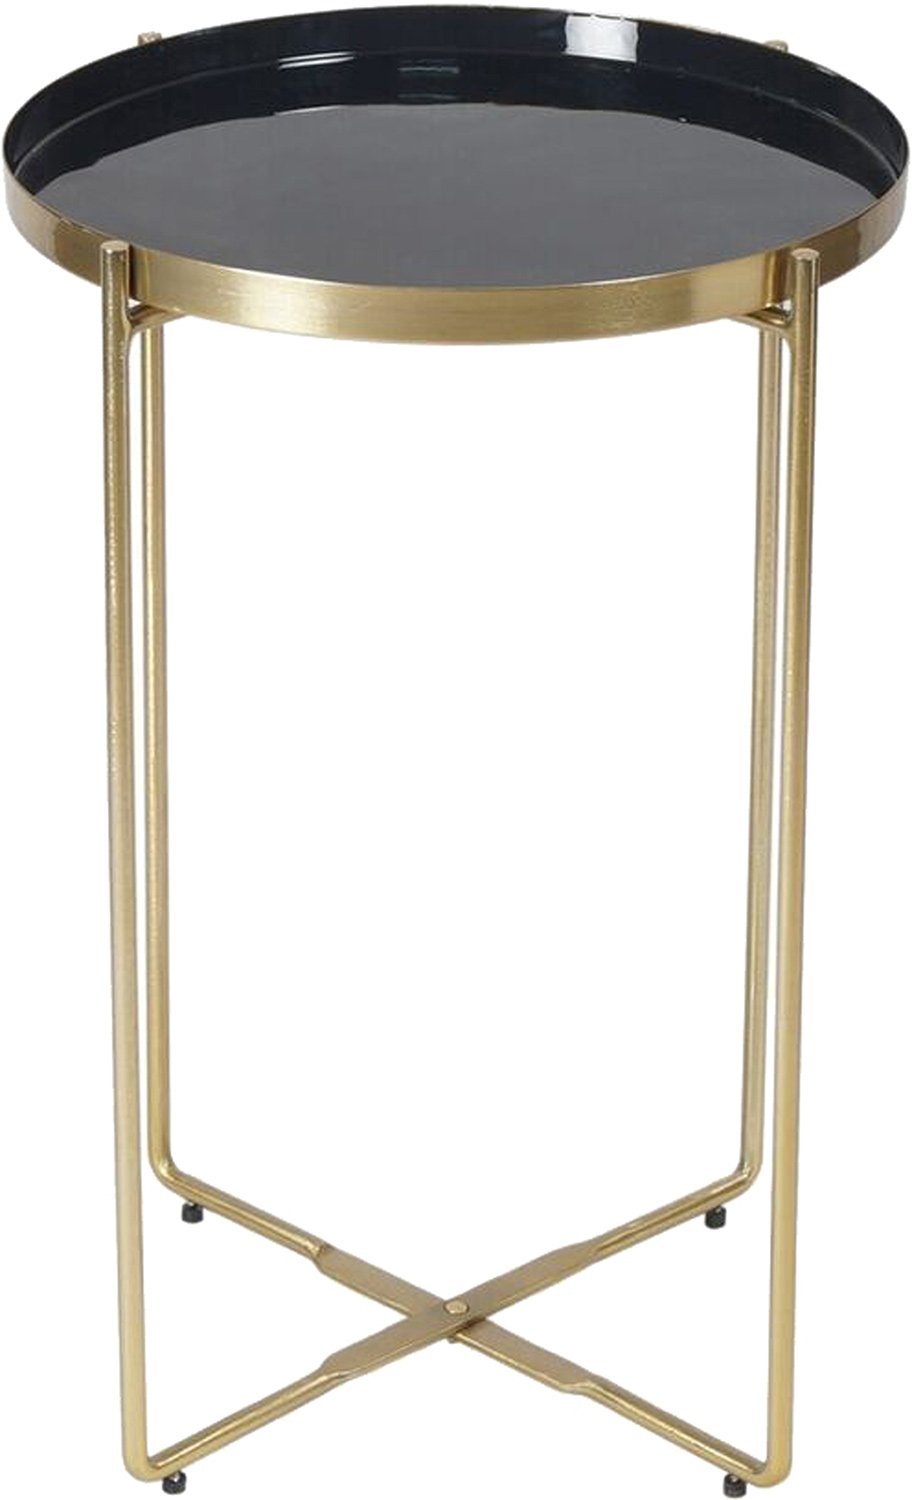 Ren-Wil Aspen Accent Table - Brass/Enamel